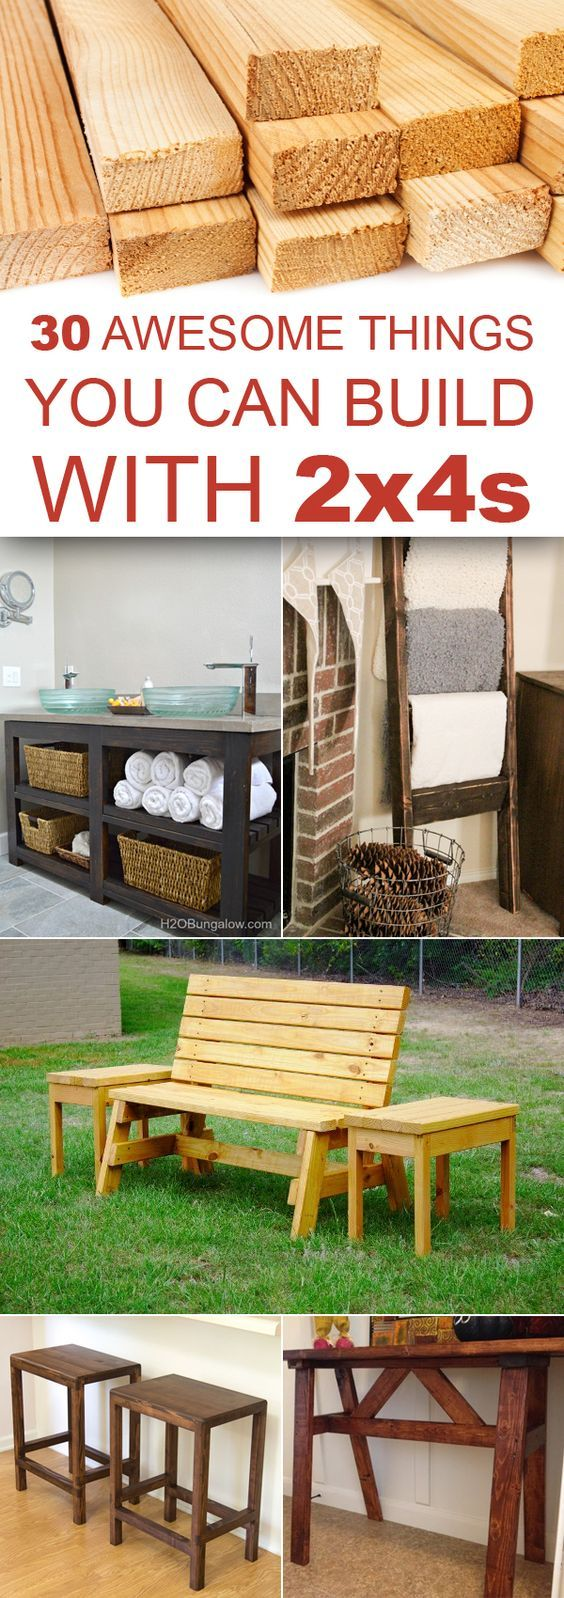 30 Awesome Things You Can Build With 2x4s | Build/Wood Crafts | Pinterest |  Awesome Things, 30th And Woodworking